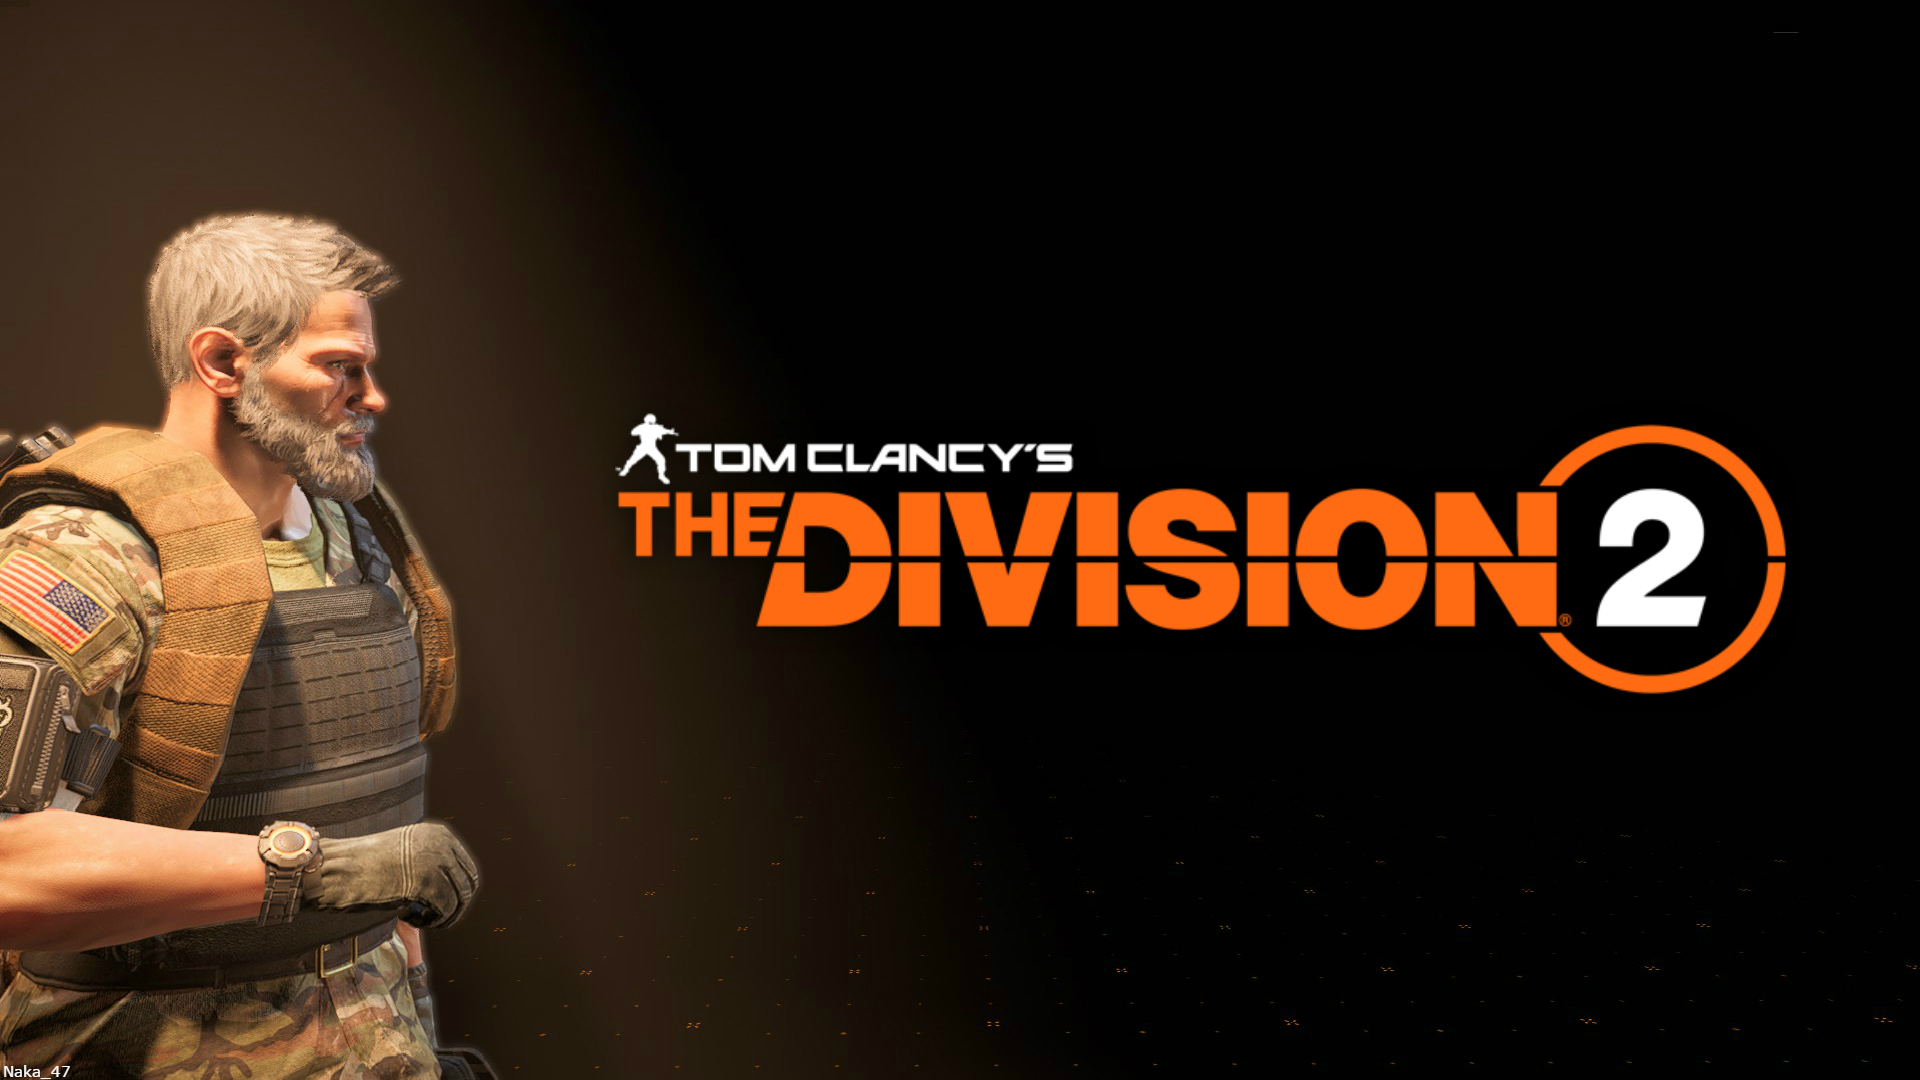 Tom Clancy's The Division 2 Wallpapers, Pictures, Images